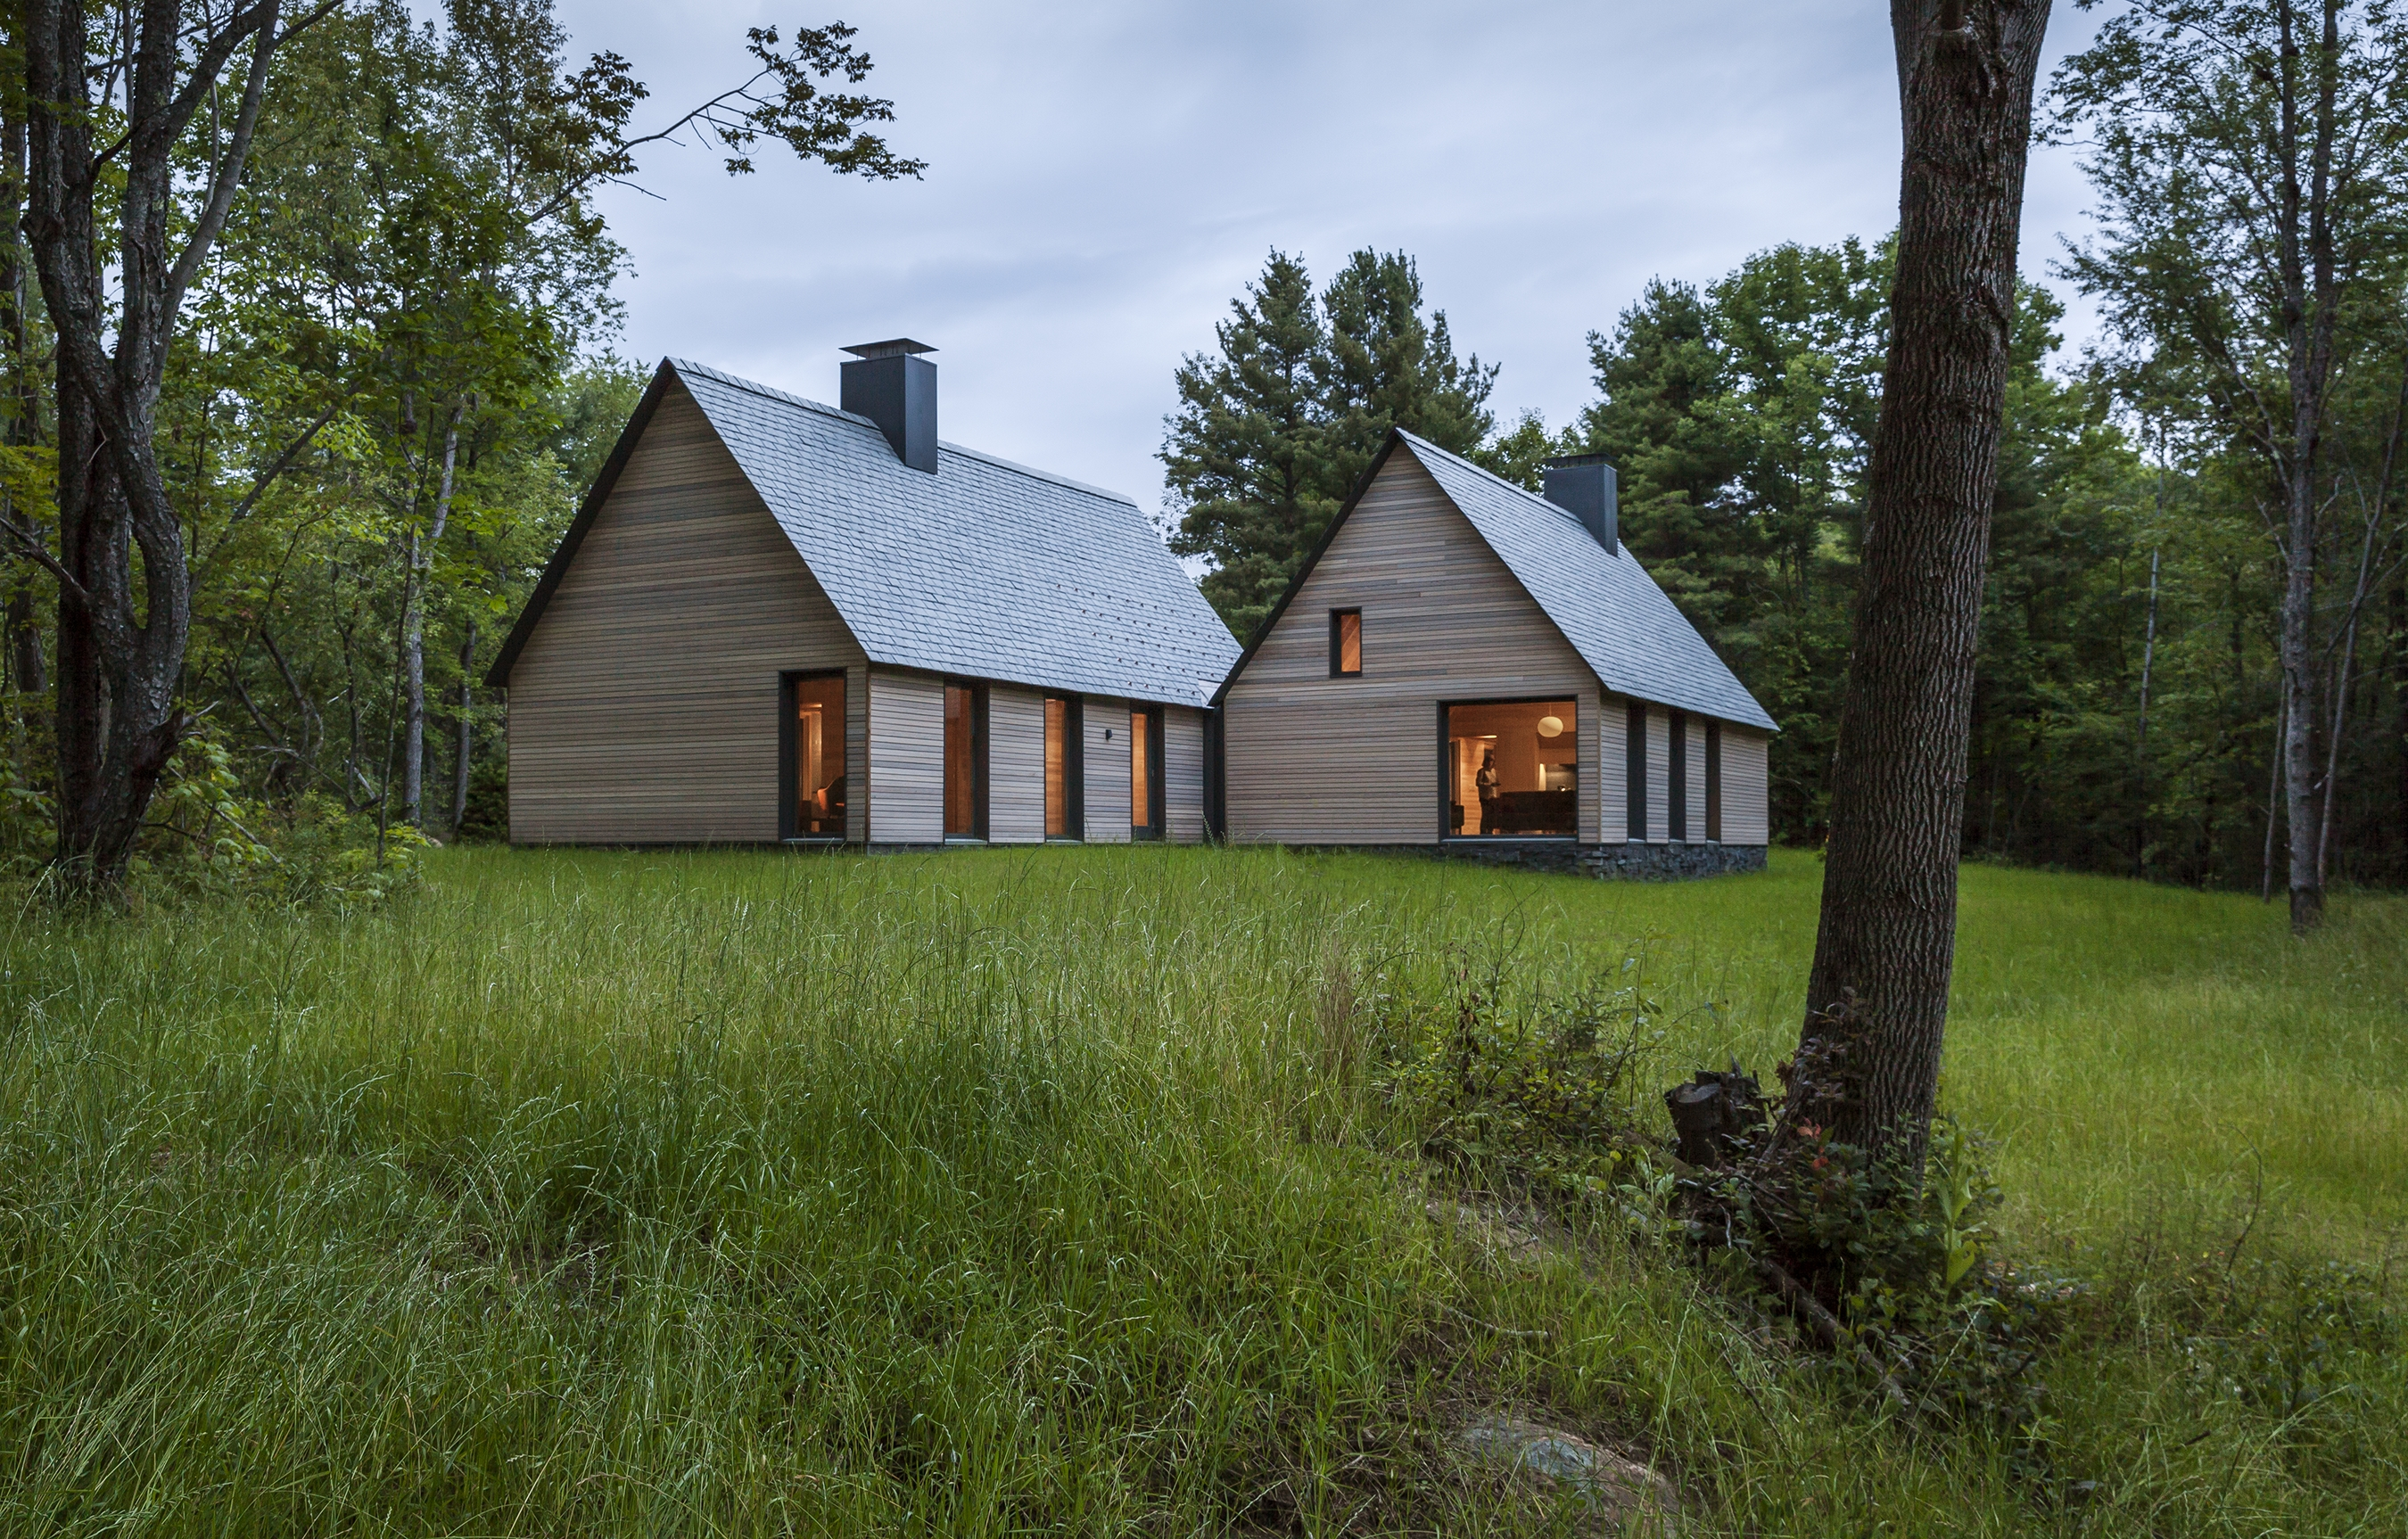 Beau HGA Architects And Engineers (HGA) For The Marlboro Music Cottages At The  Marlboro Music School And Festival In Marlboro, Vermont. The Project Team  Included ...